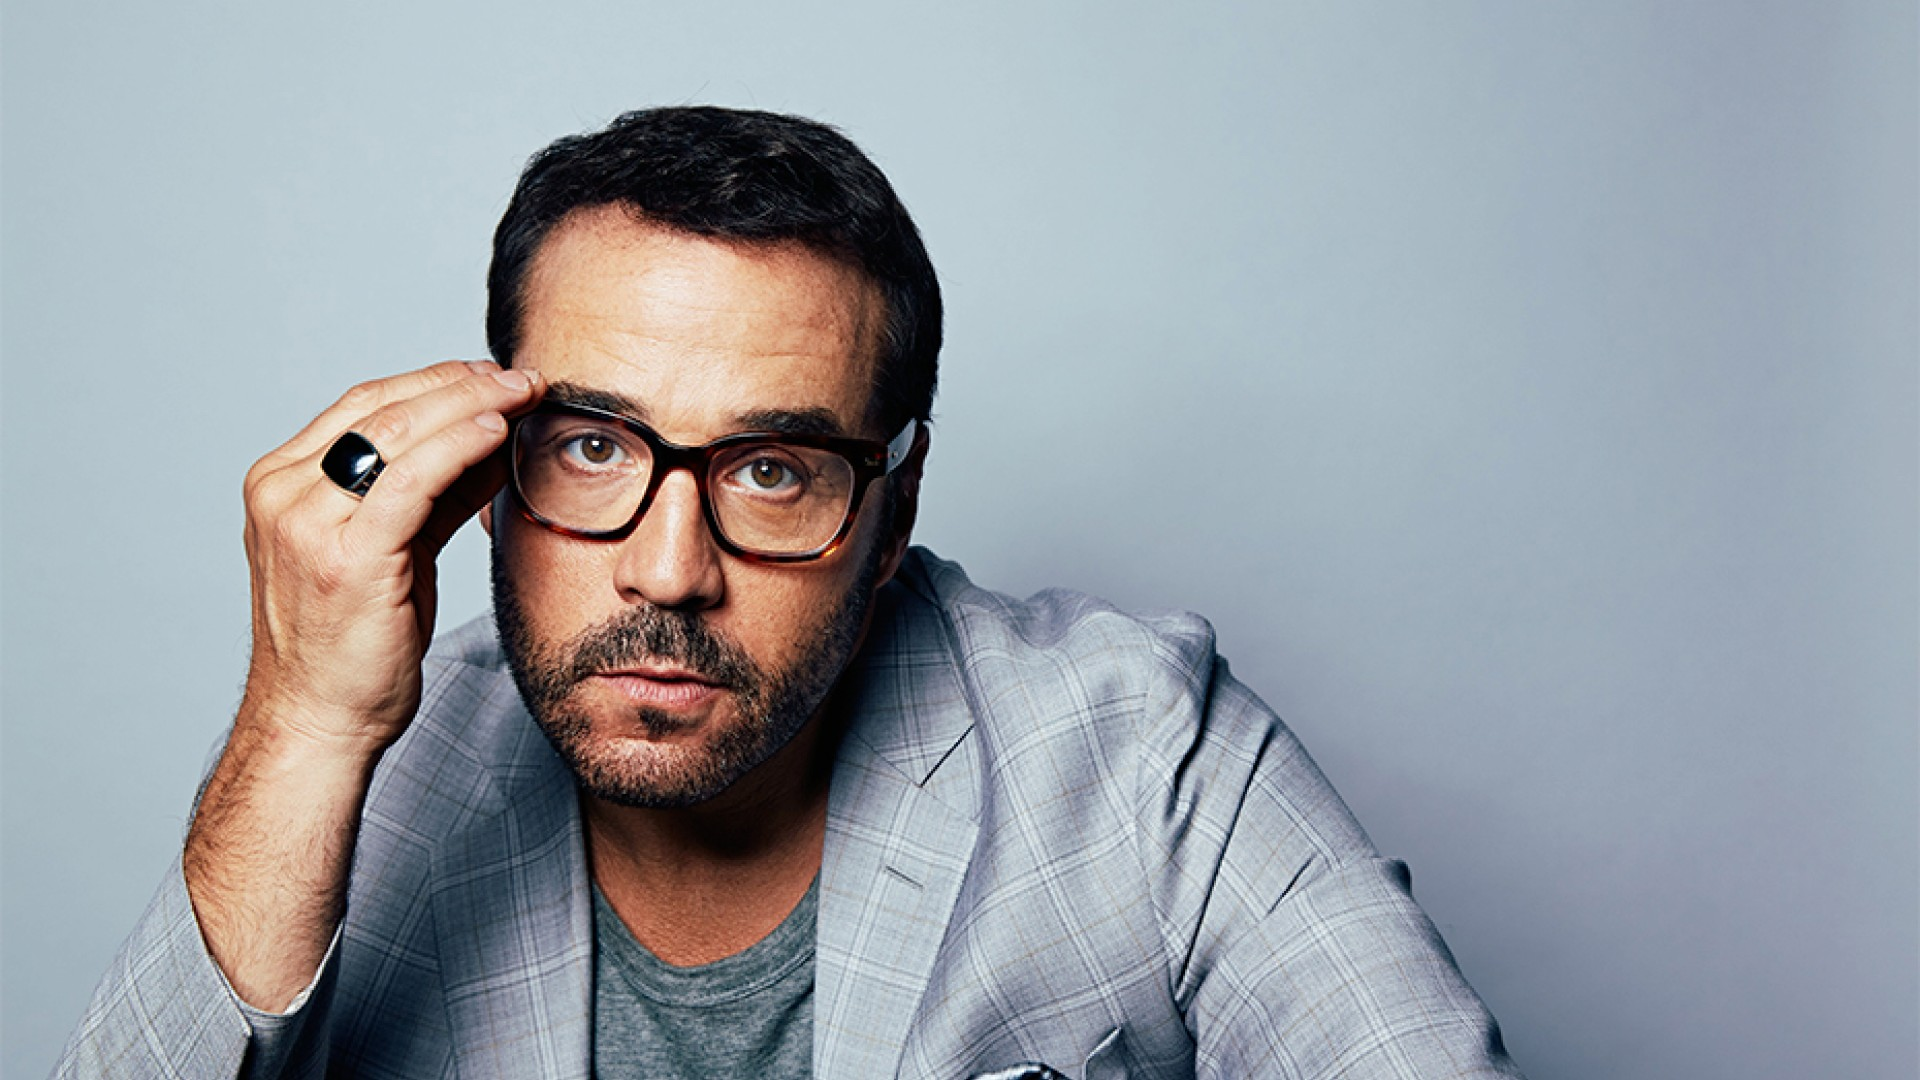 Jeremy Piven on his return as Mr Selfridge, playing money